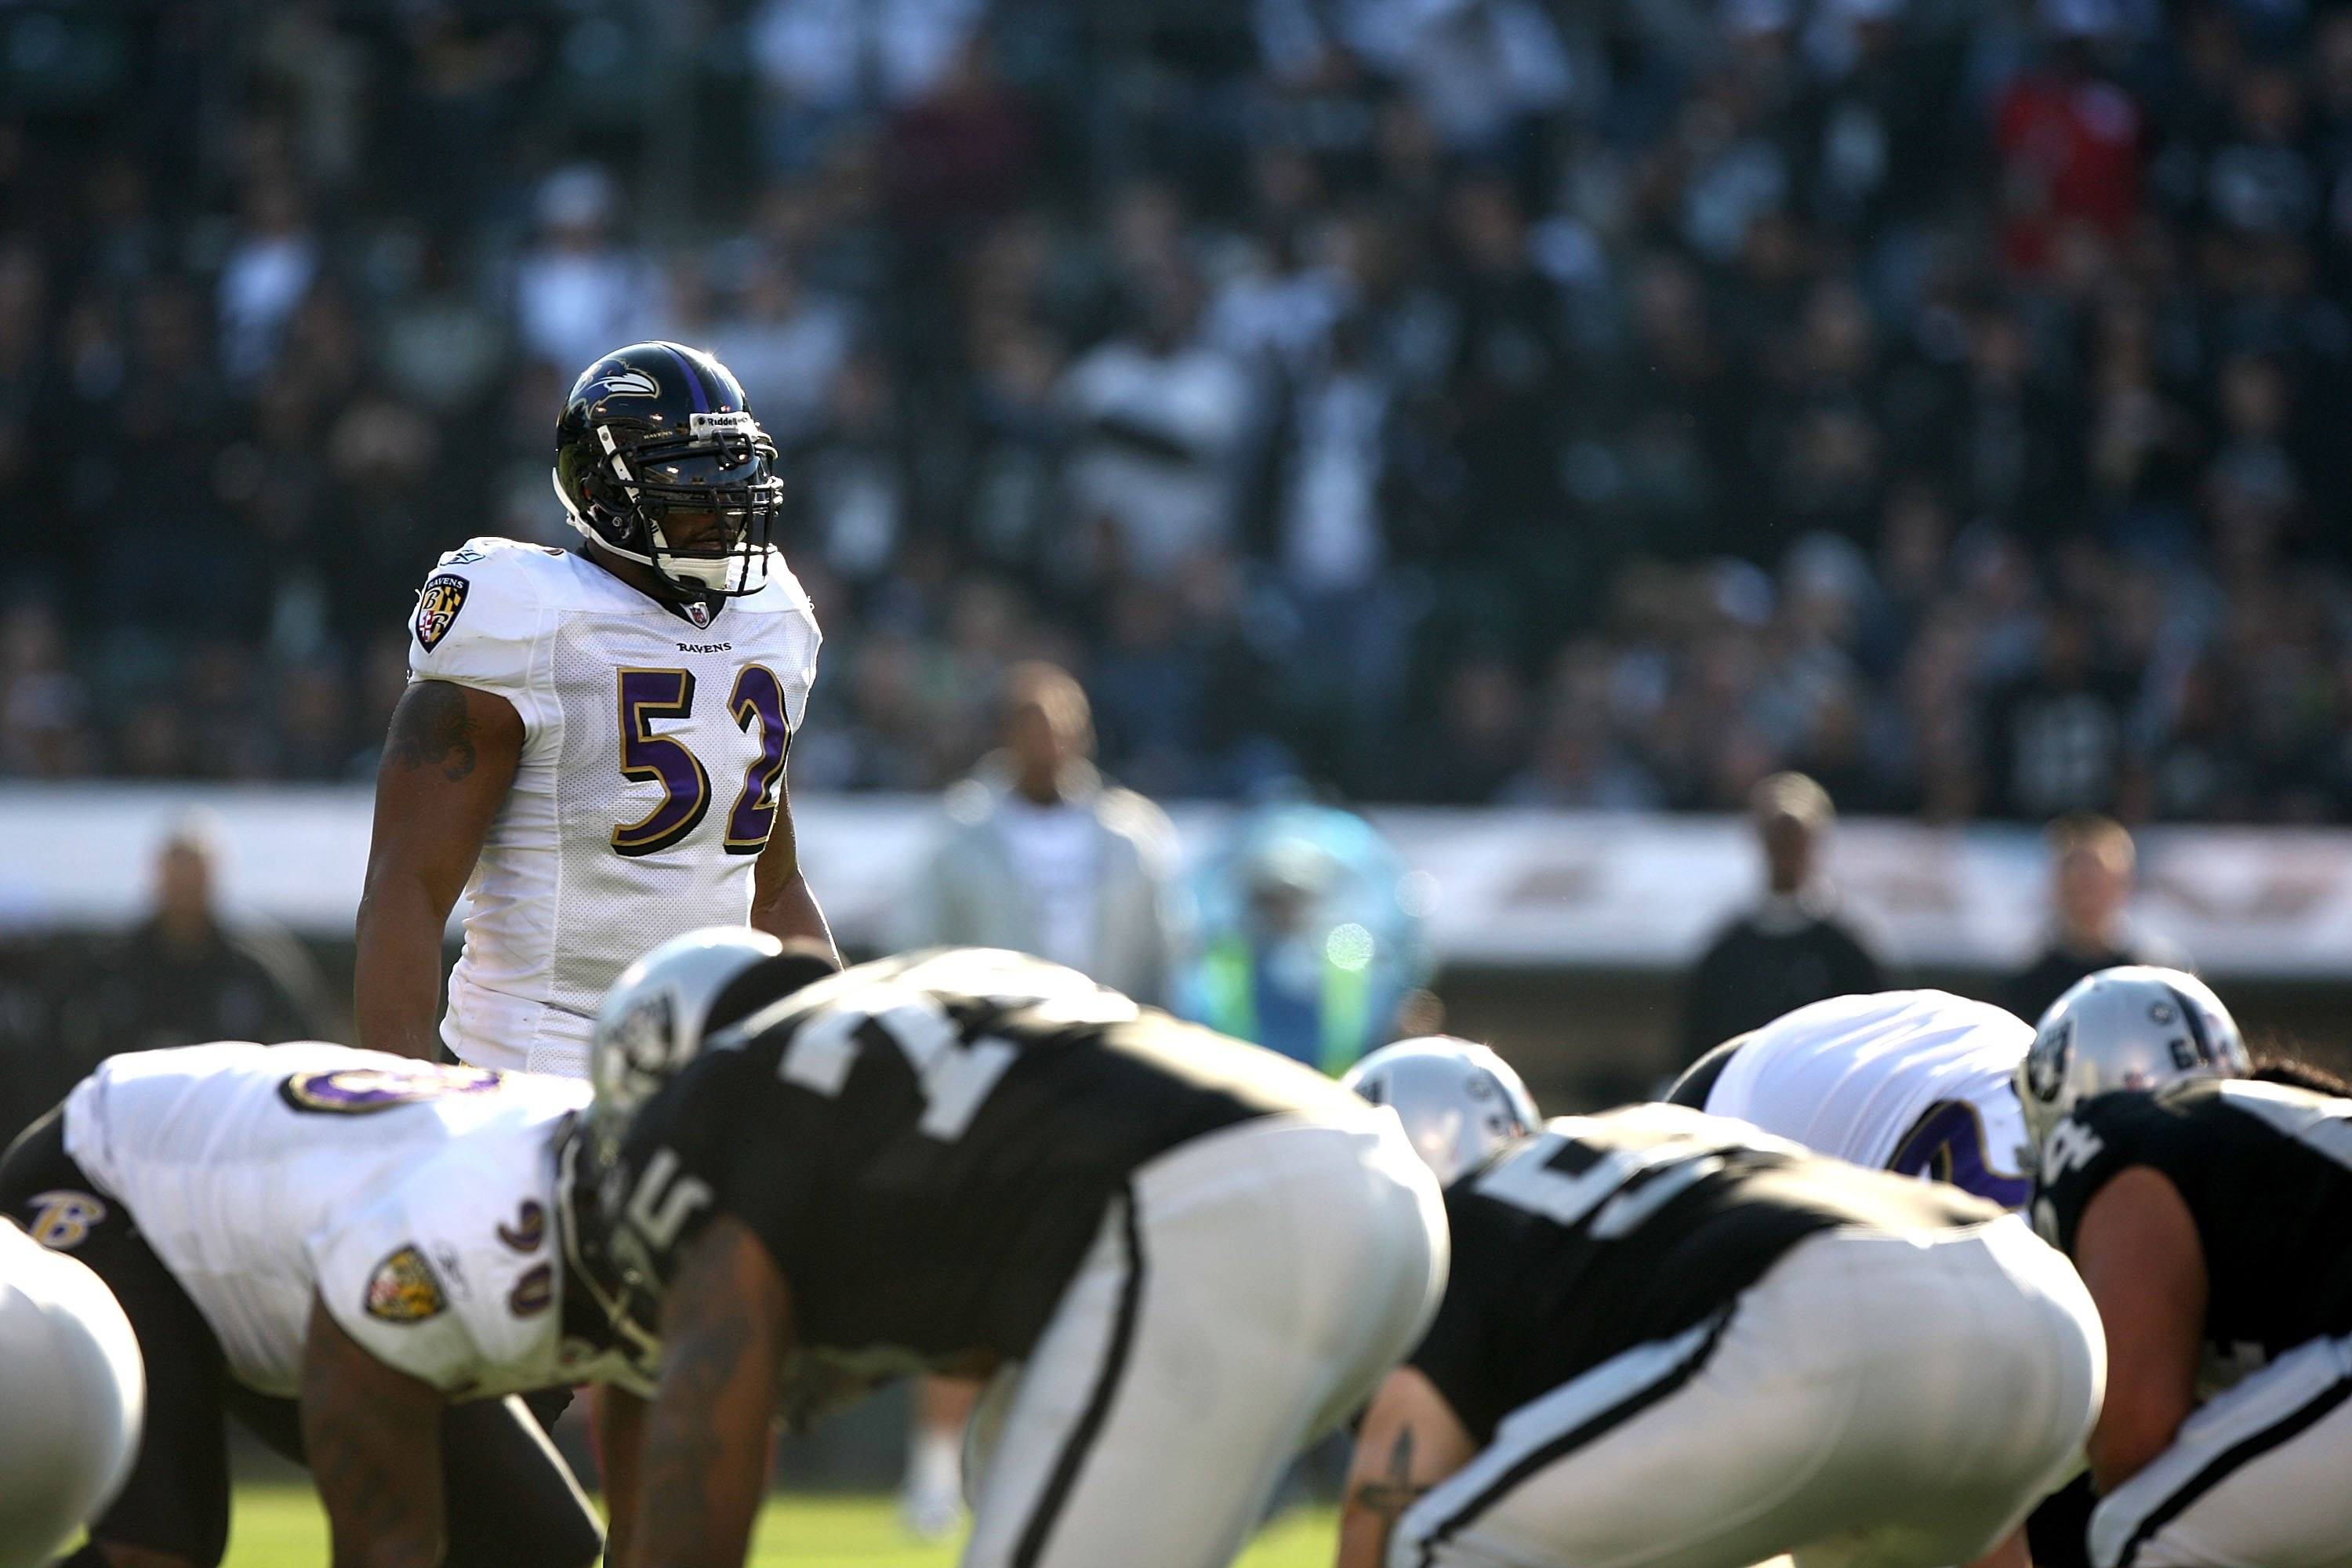 OAKLAND, CA - JANUARY 03:  Ray Lewis #52 of the Baltimore Ravens in action against the Oakland Raiders during an NFL game at Oakland-Alameda County Coliseum on January 3, 2010 in Oakland, California.  (Photo by Jed Jacobsohn/Getty Images)